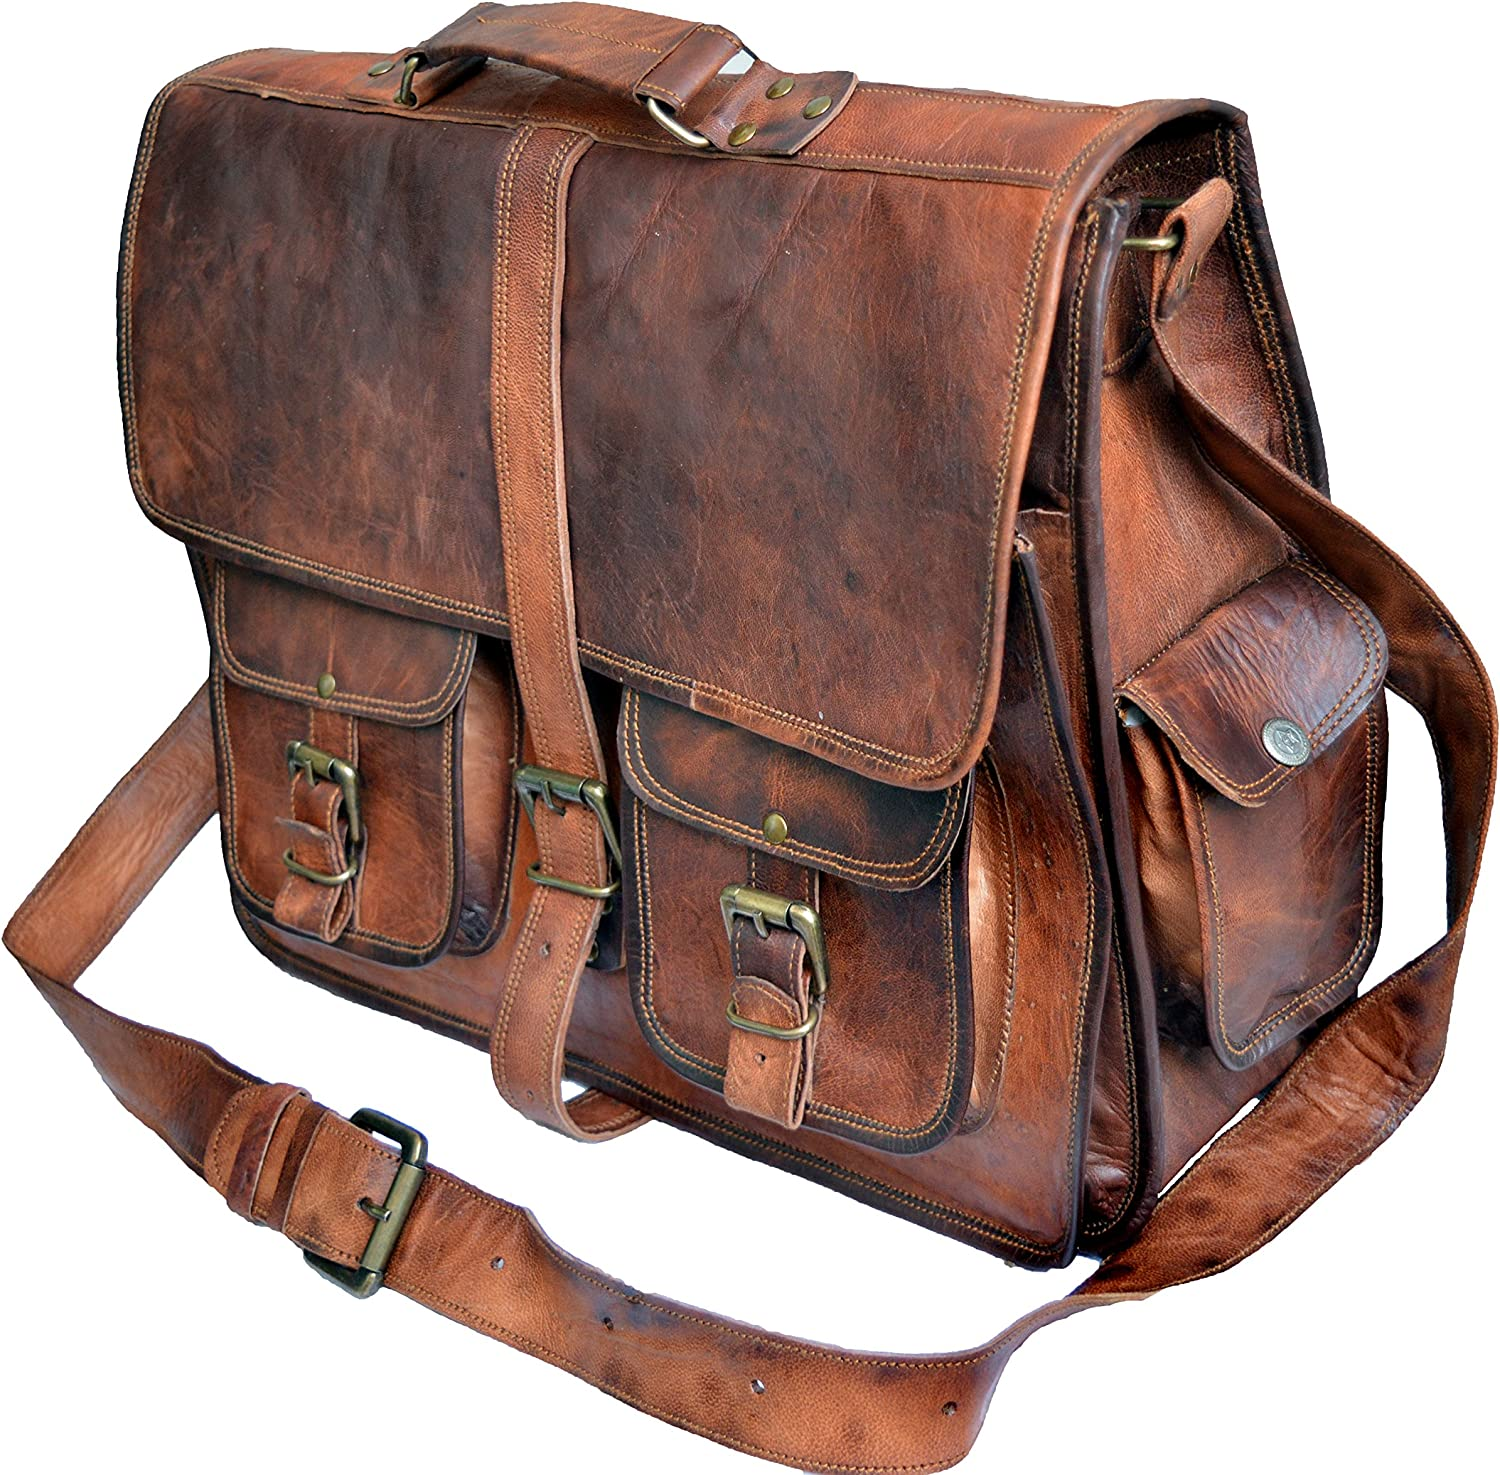 40 Cm Bolso Bandolera Laptop Bag Bolsa De Hombro Cuerpo Cruzado Grande para Mensajero Mensajeria De Cuero Piel Marron Portatil Notebook Bag College Office Hombre Y Mujer Leather Messenger Bag